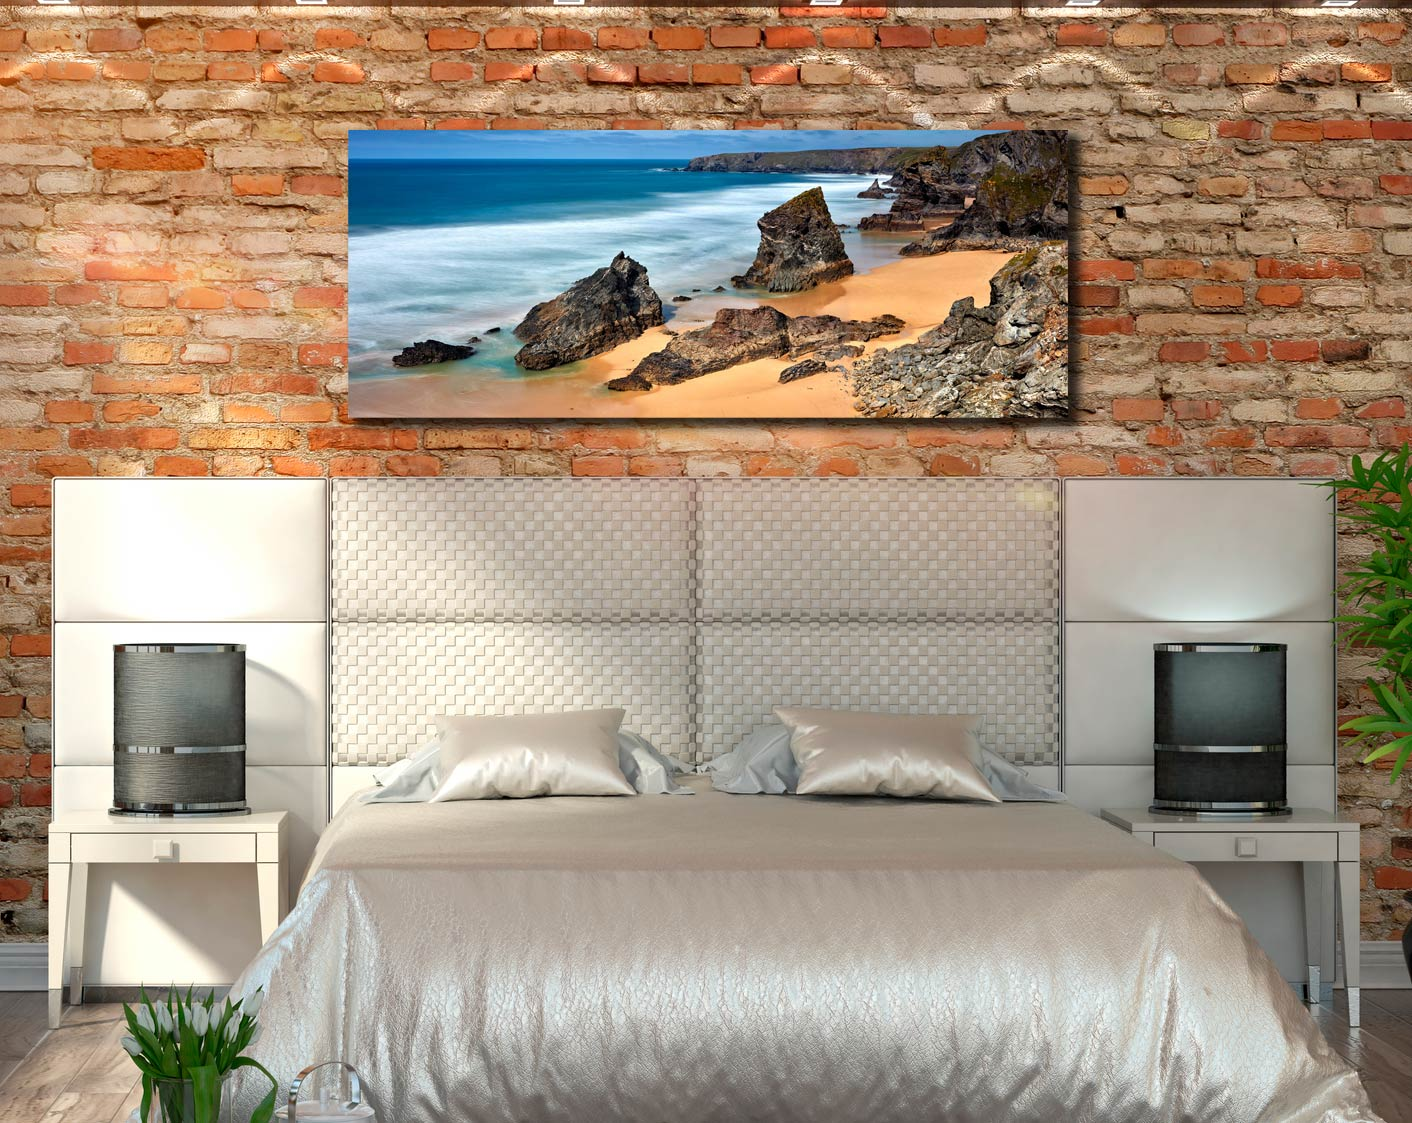 The wonderful rock stacks at Carnewas Point/Bedruthan Steps on the north Cornish coast - Print Aluminium Backing With Acrylic Glazing on Wall